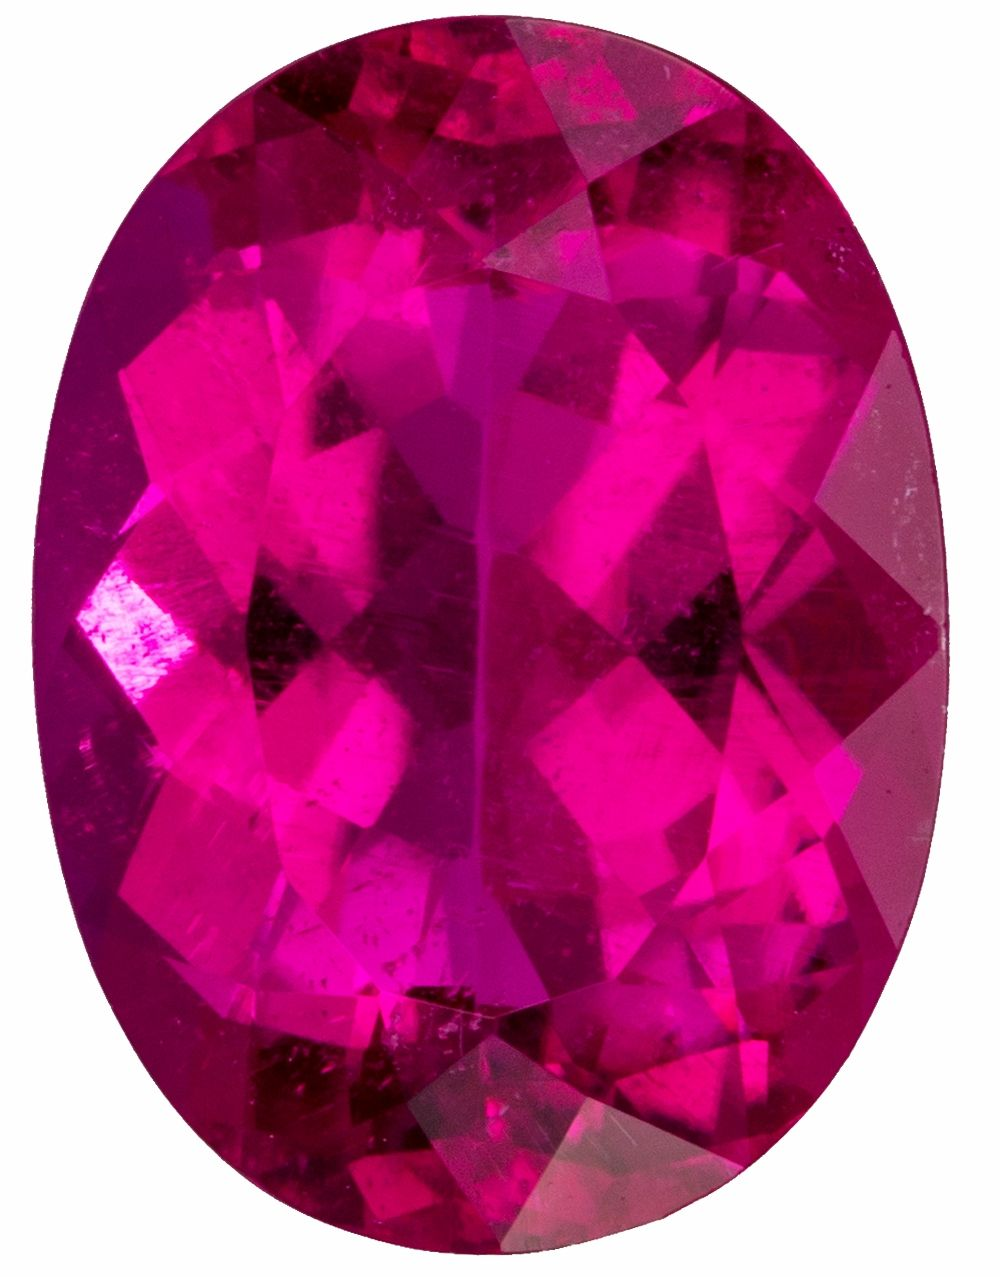 Gorgeous Rubellite Tourmaline 4.27 carats, Oval shape gemstone, 12.6 x 9.3  mm